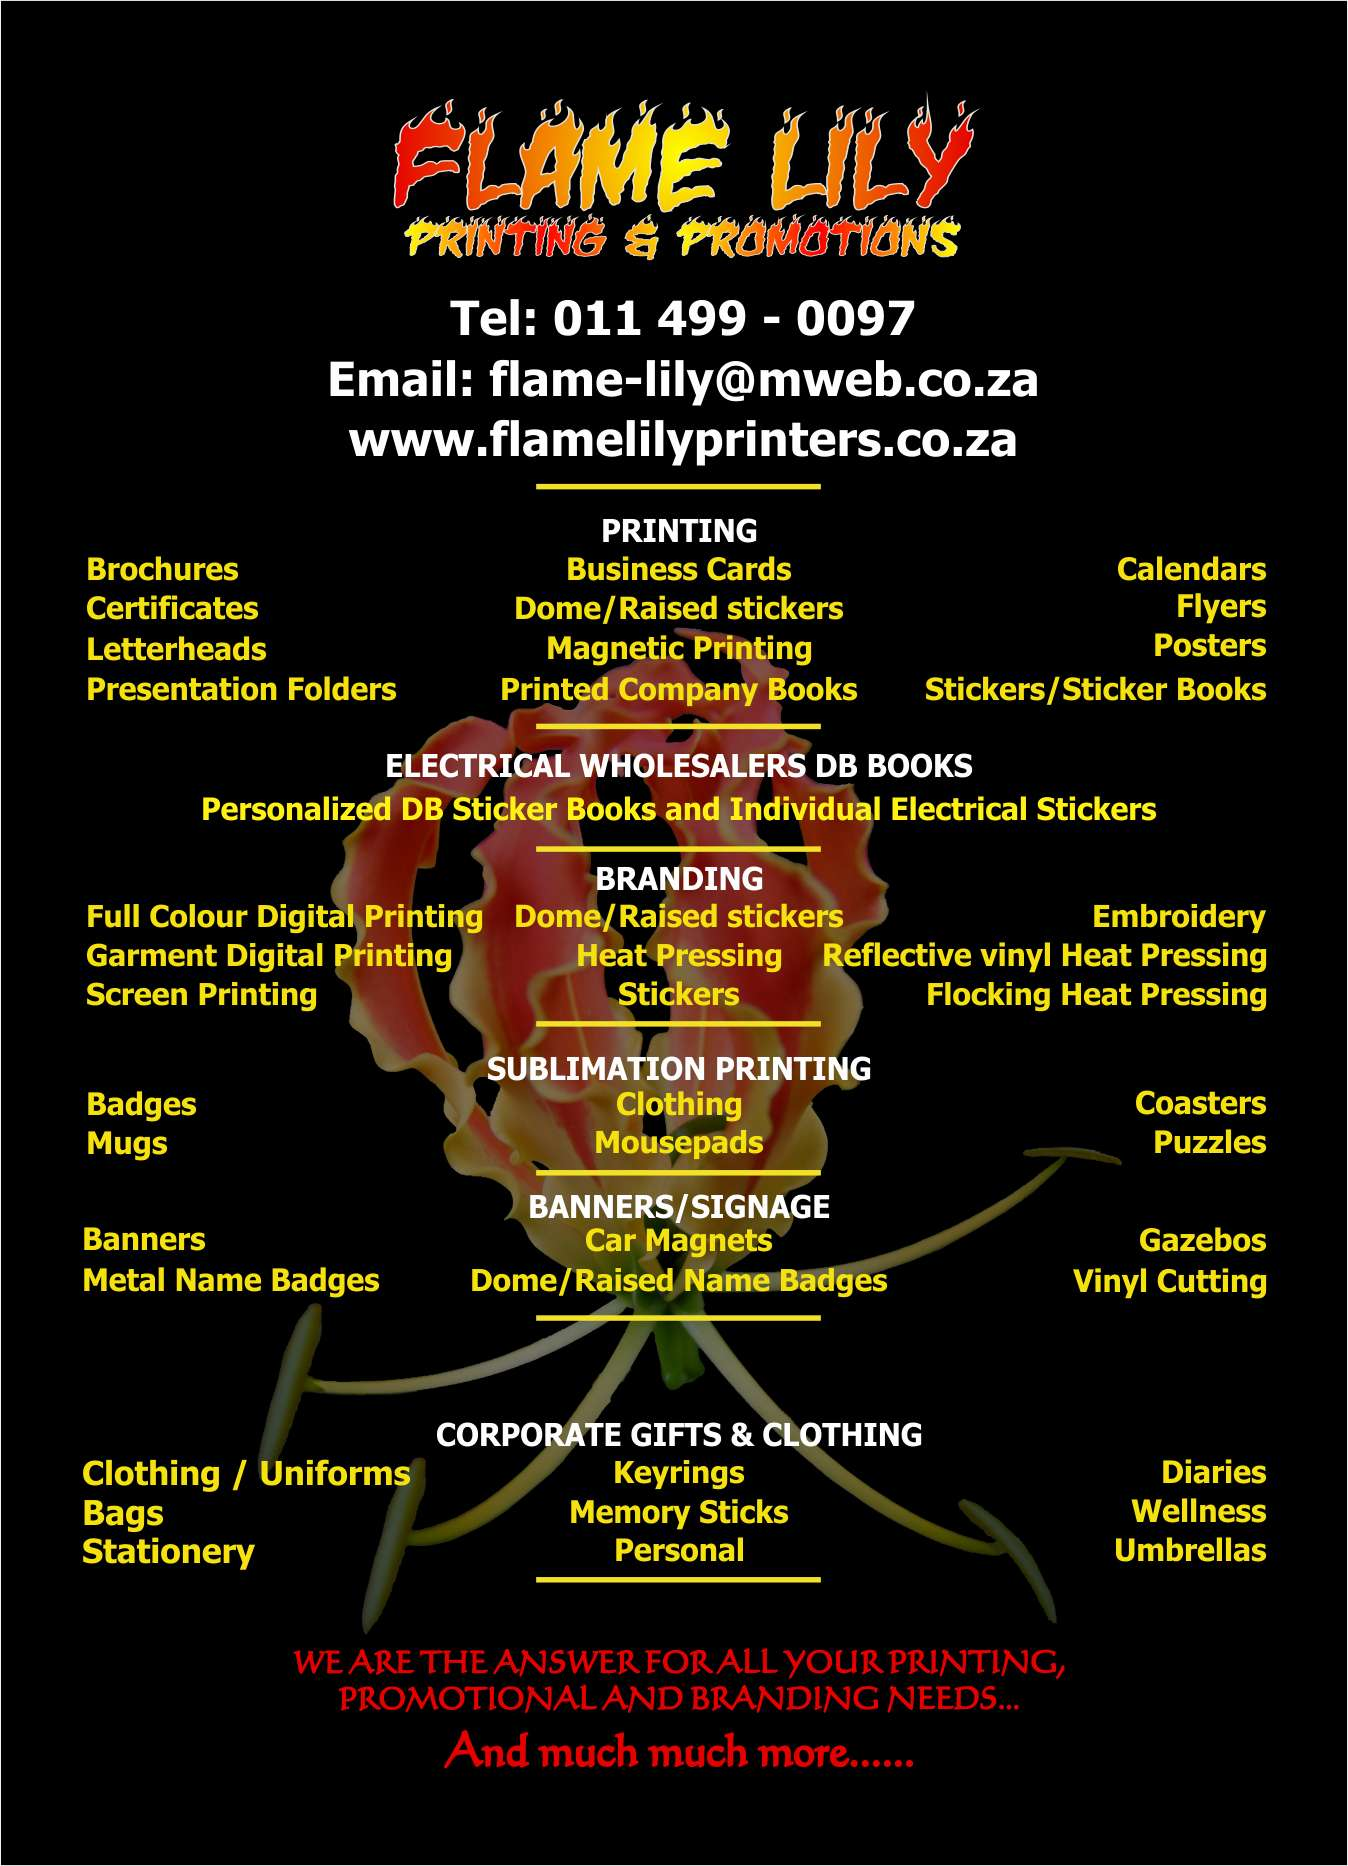 For all your PRINTING, SIGNAGE, BANNERS, PROMOTIONAL GIFTS, CLOTHING AND BRANDING NEEDS